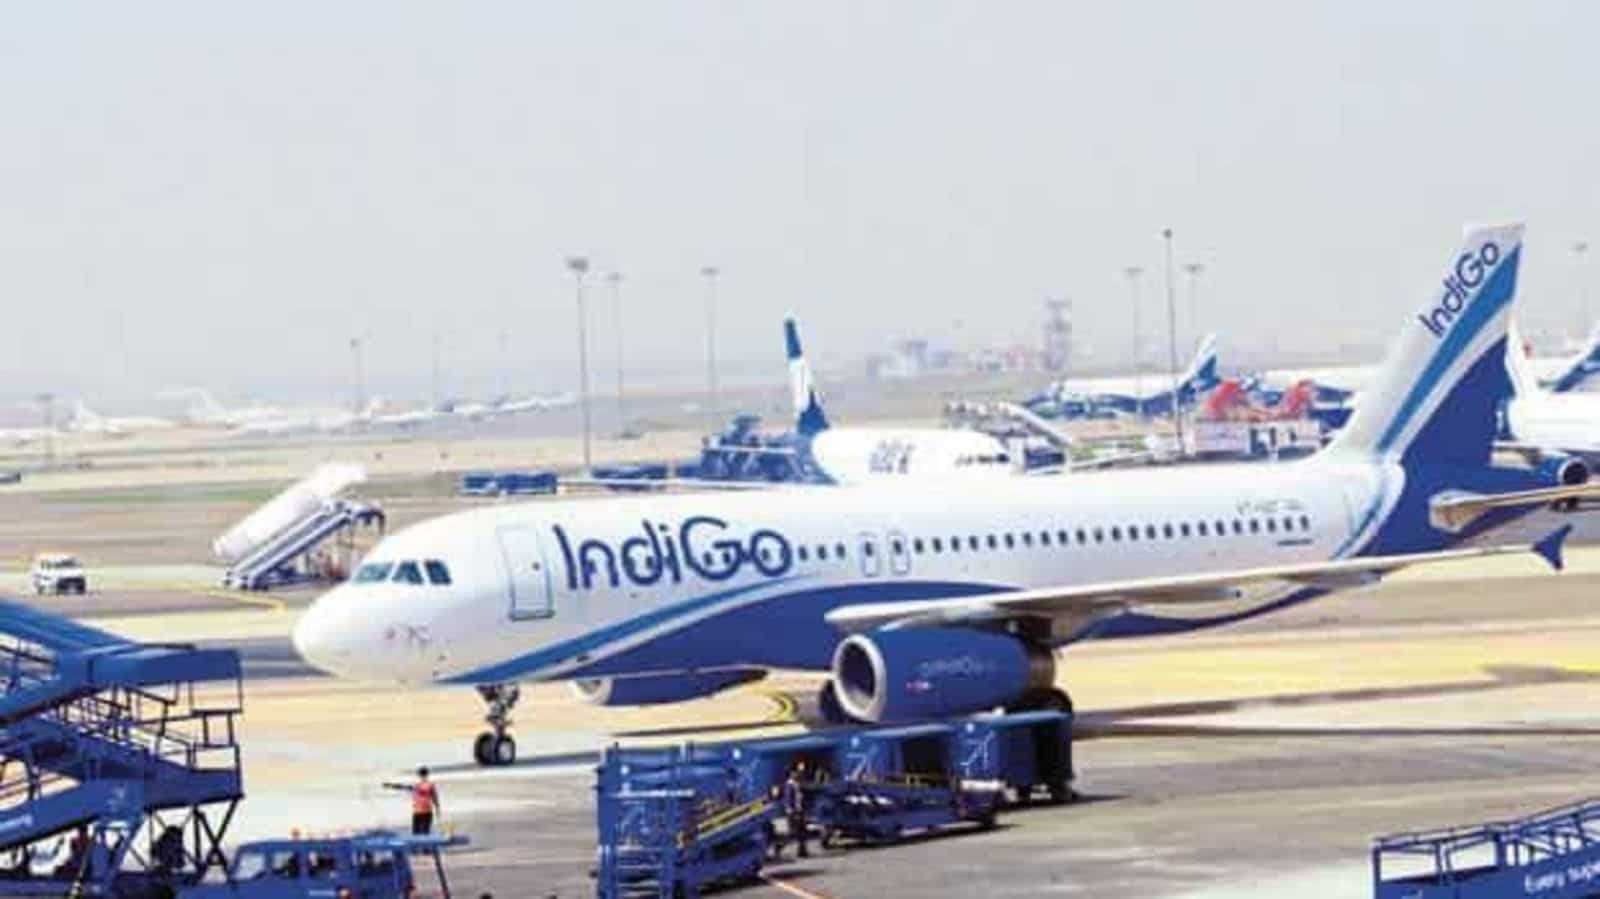 Domestic flights: DGCA approves 18,843 flights per week for summer schedule